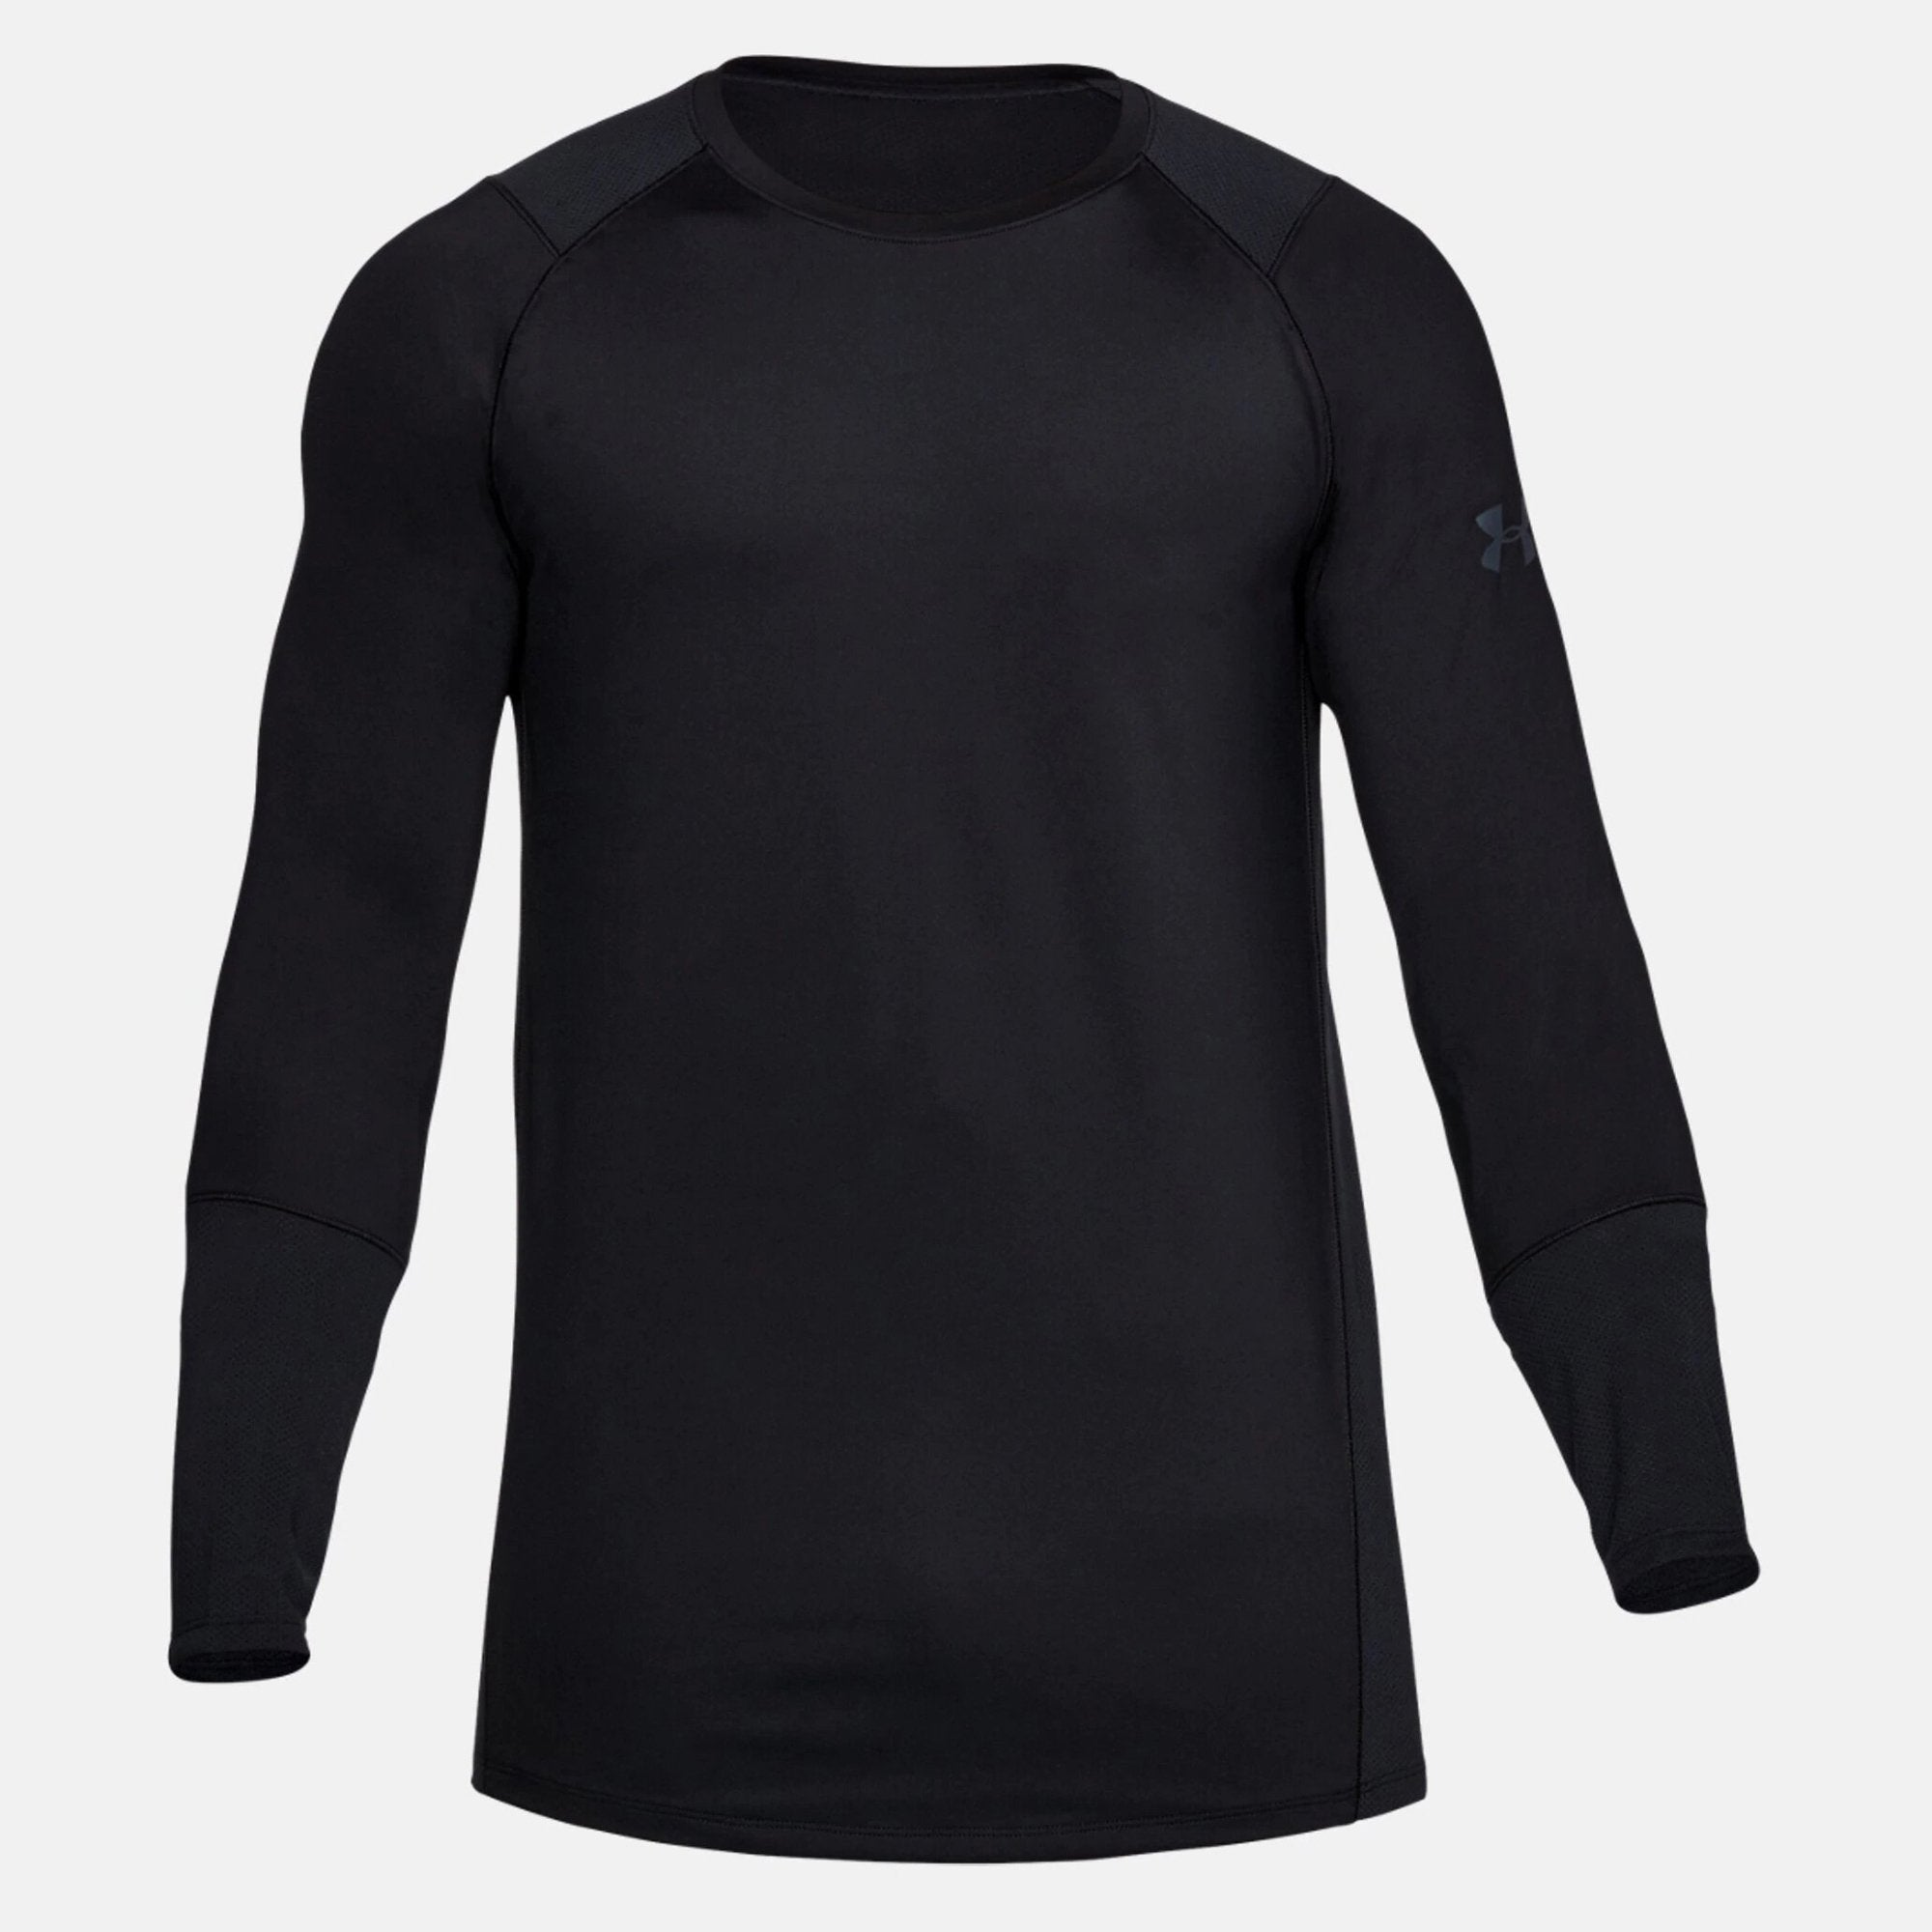 under armour t shirts online